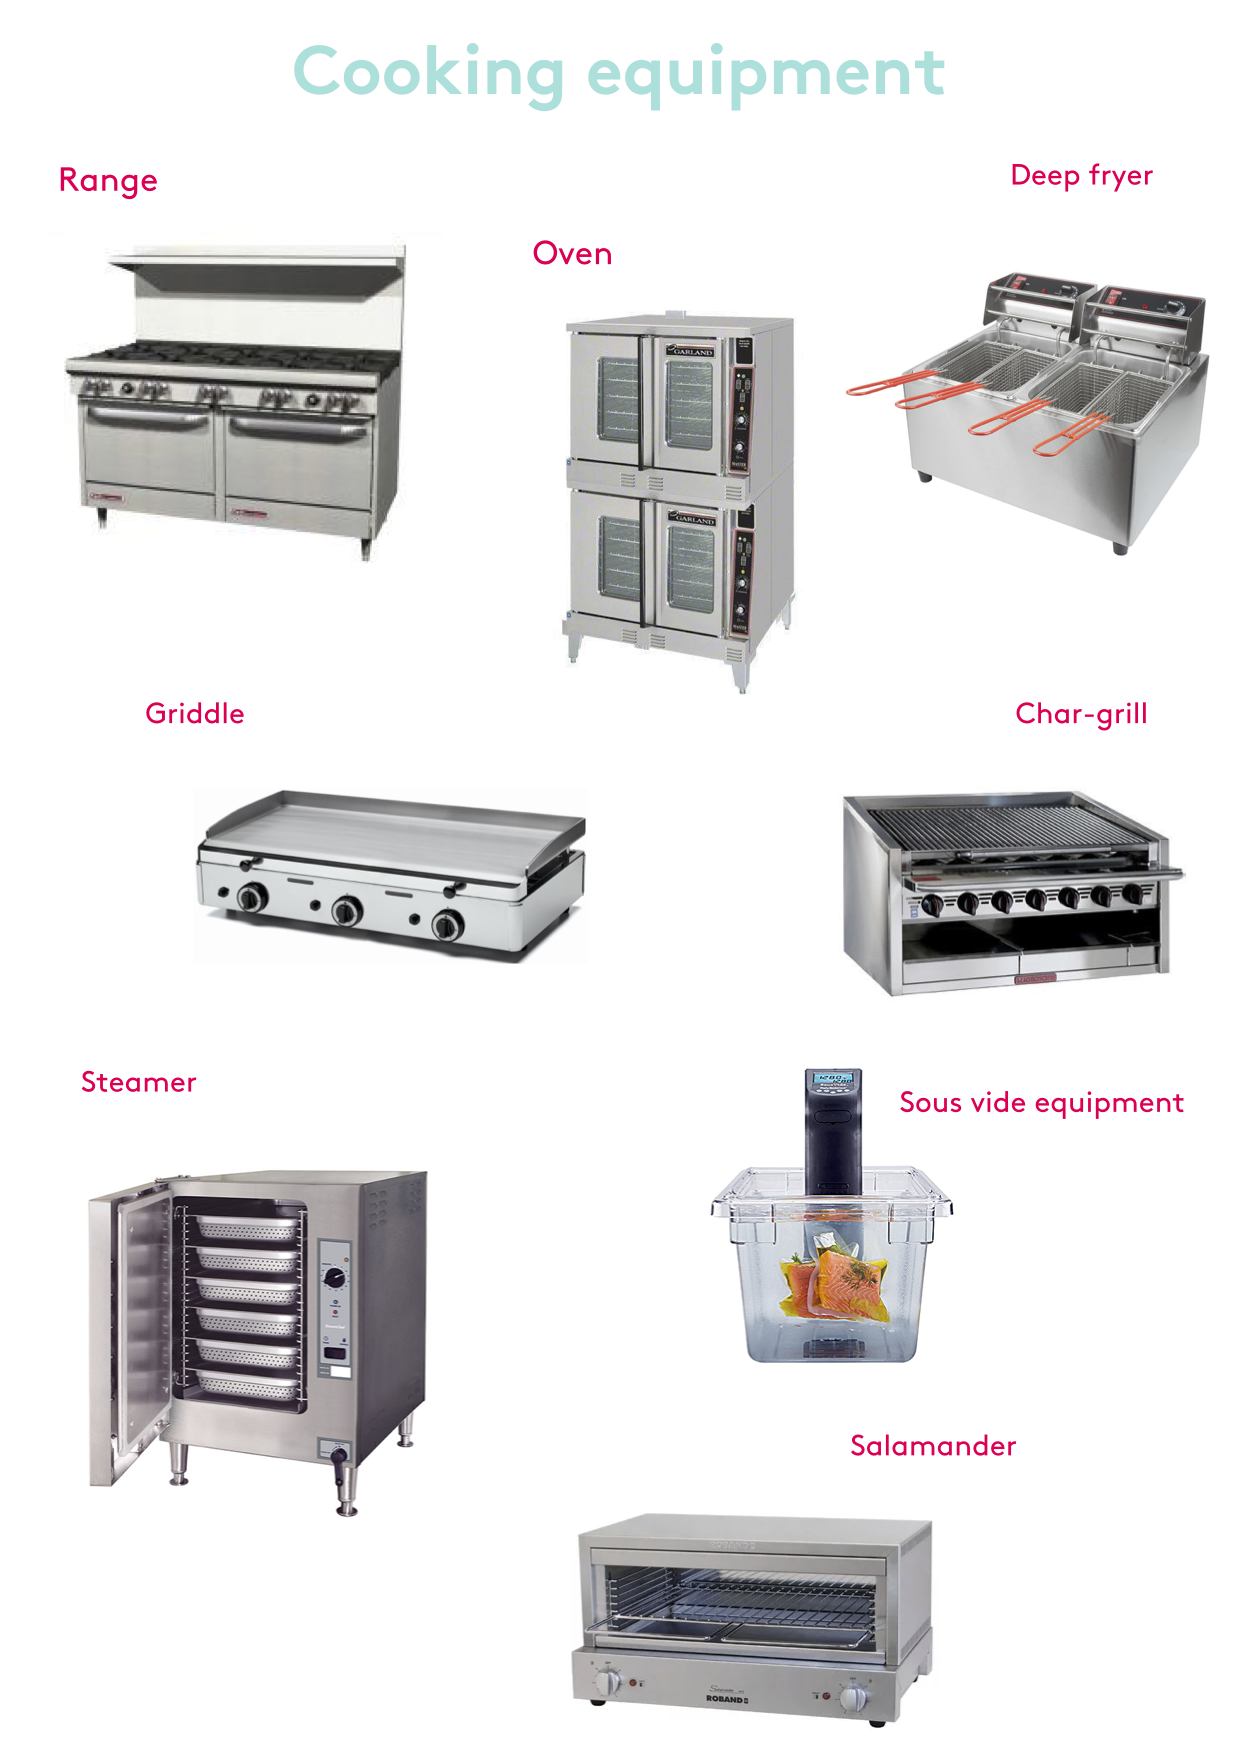 A guide to kitchen equipment RESOURCE 1 - Cooking equipment.png